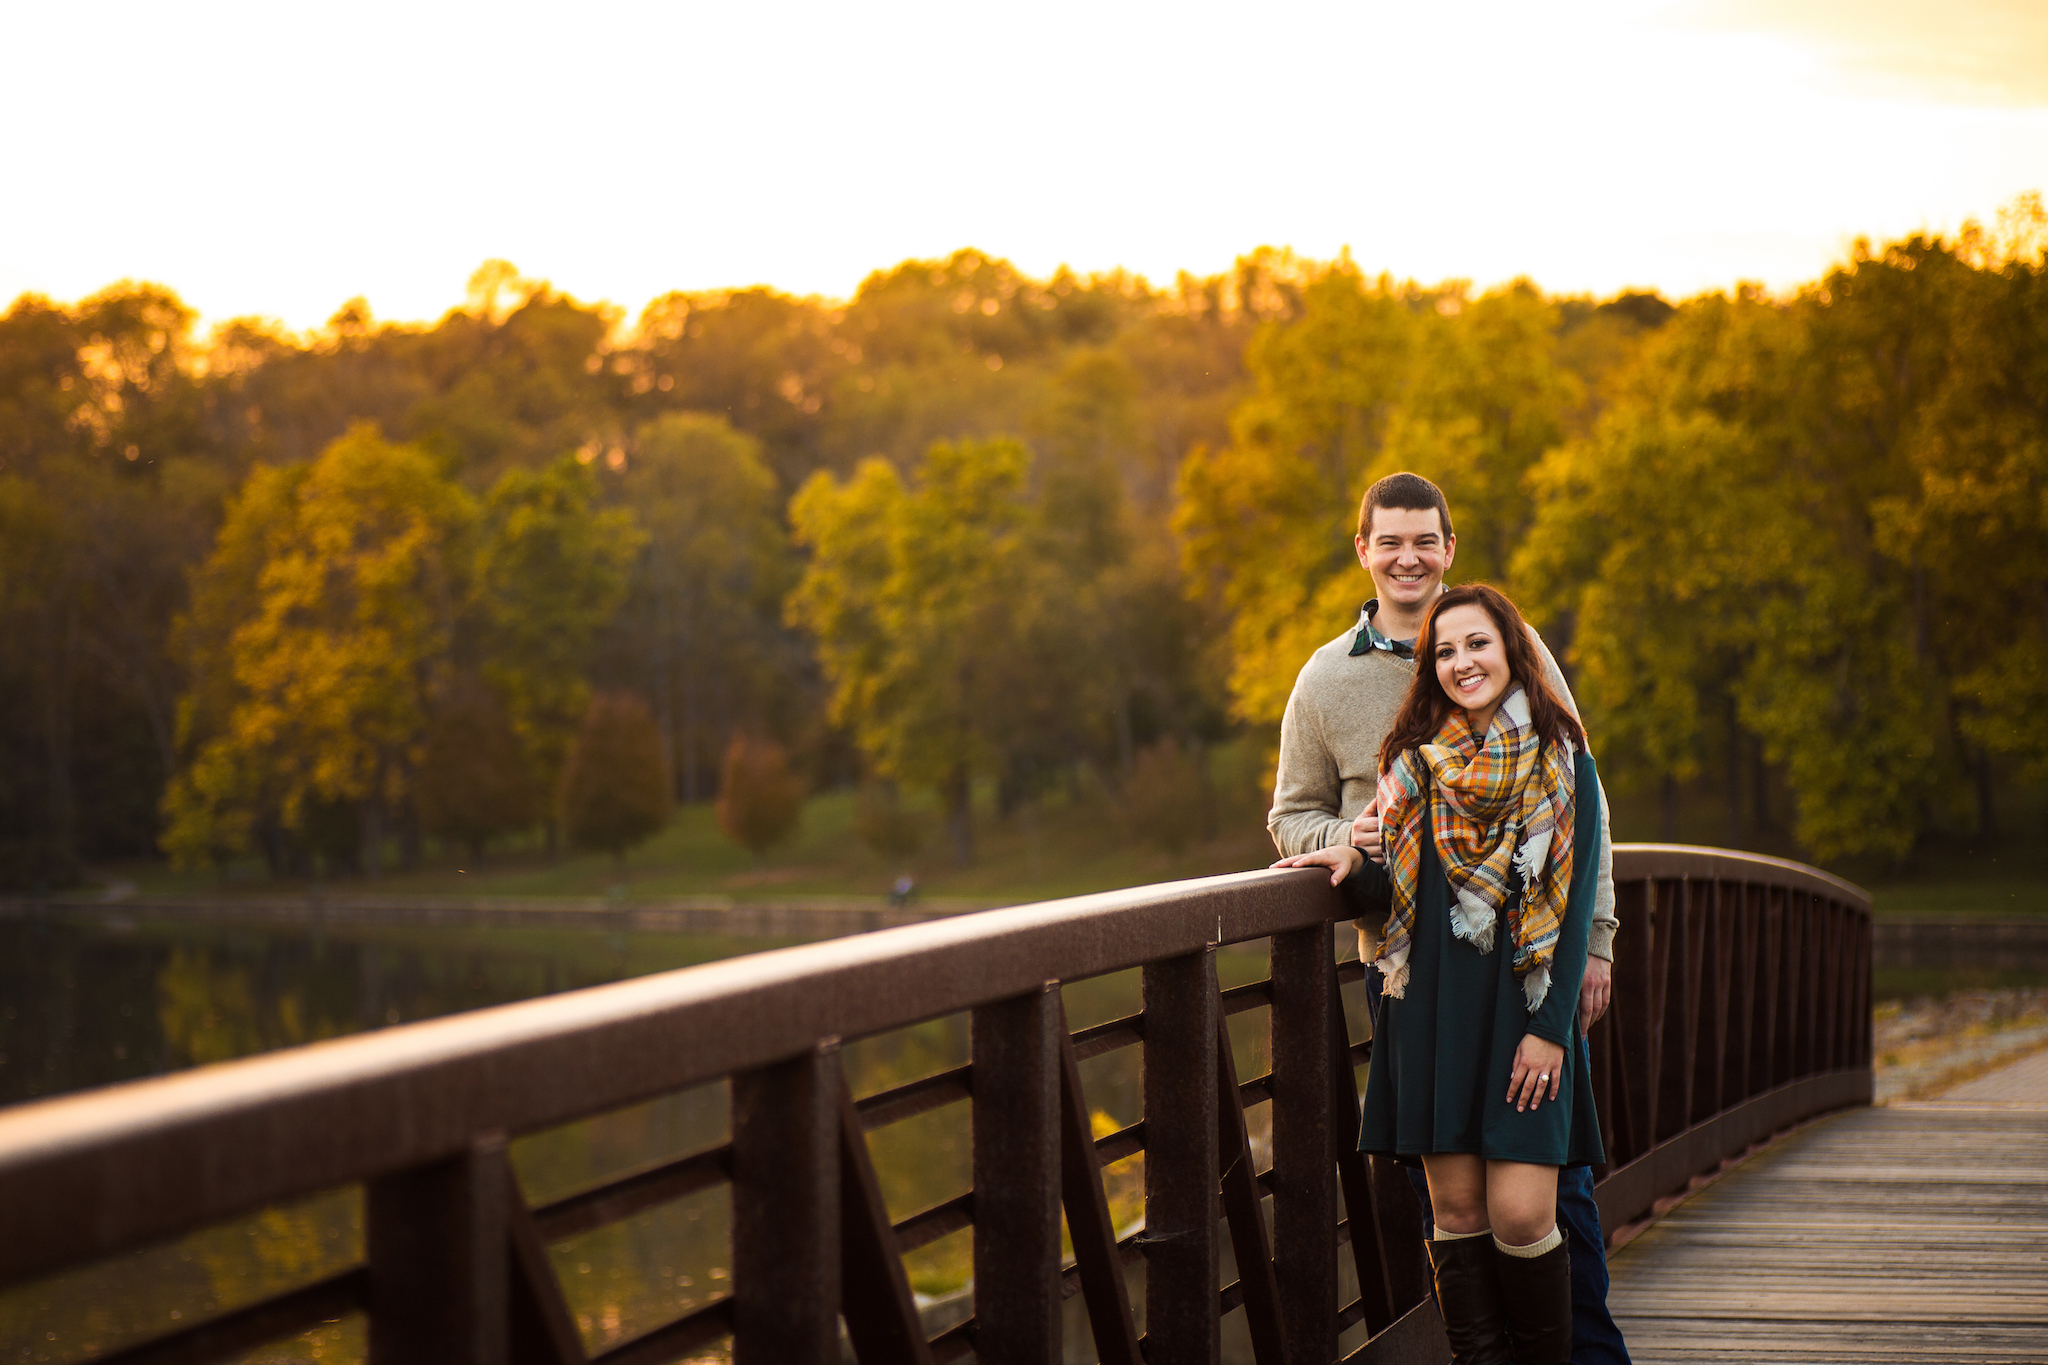 """When should we have our session?"" - Timing your session is dependent on many factors. Will the images be used on your save-the-dates? Will your session location look best at a certain time of day, or season? These are elements we can work out together to ensure an engagement session that is perfectly catered to you!"